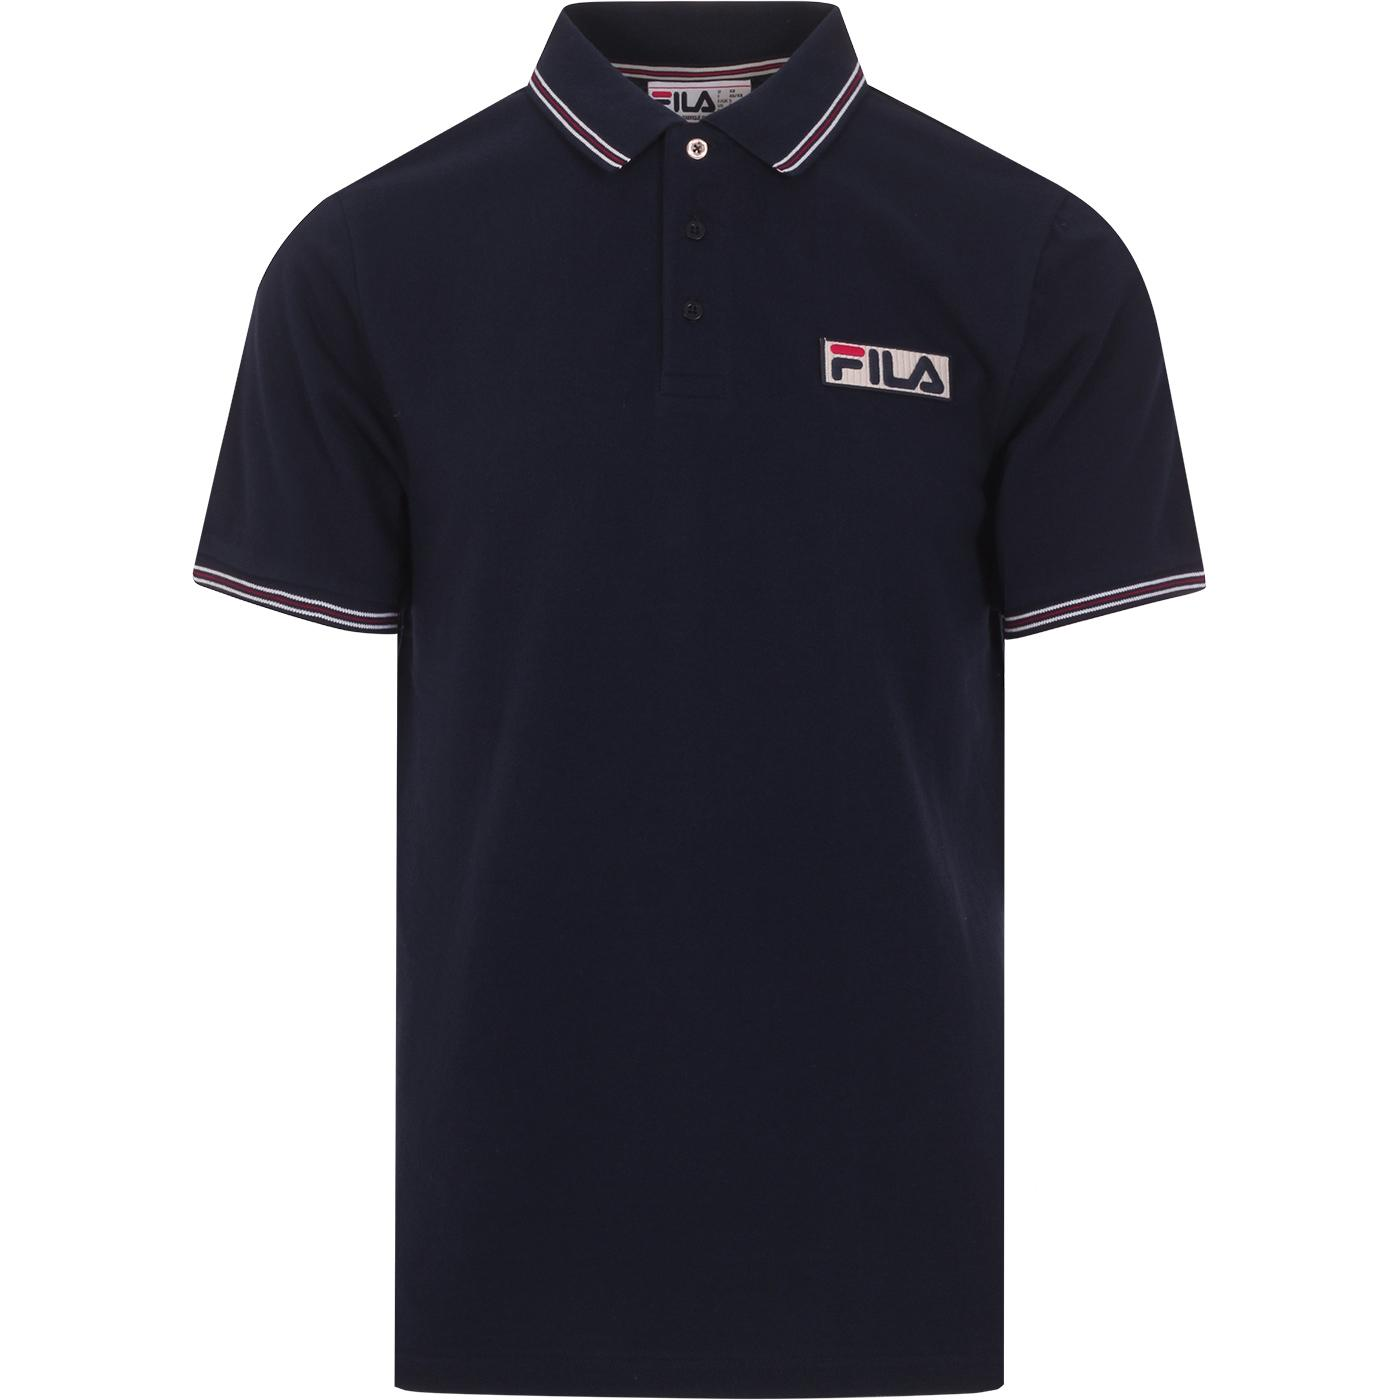 Connell FILA VINTAGE Retro Tipped Mod Polo in Navy